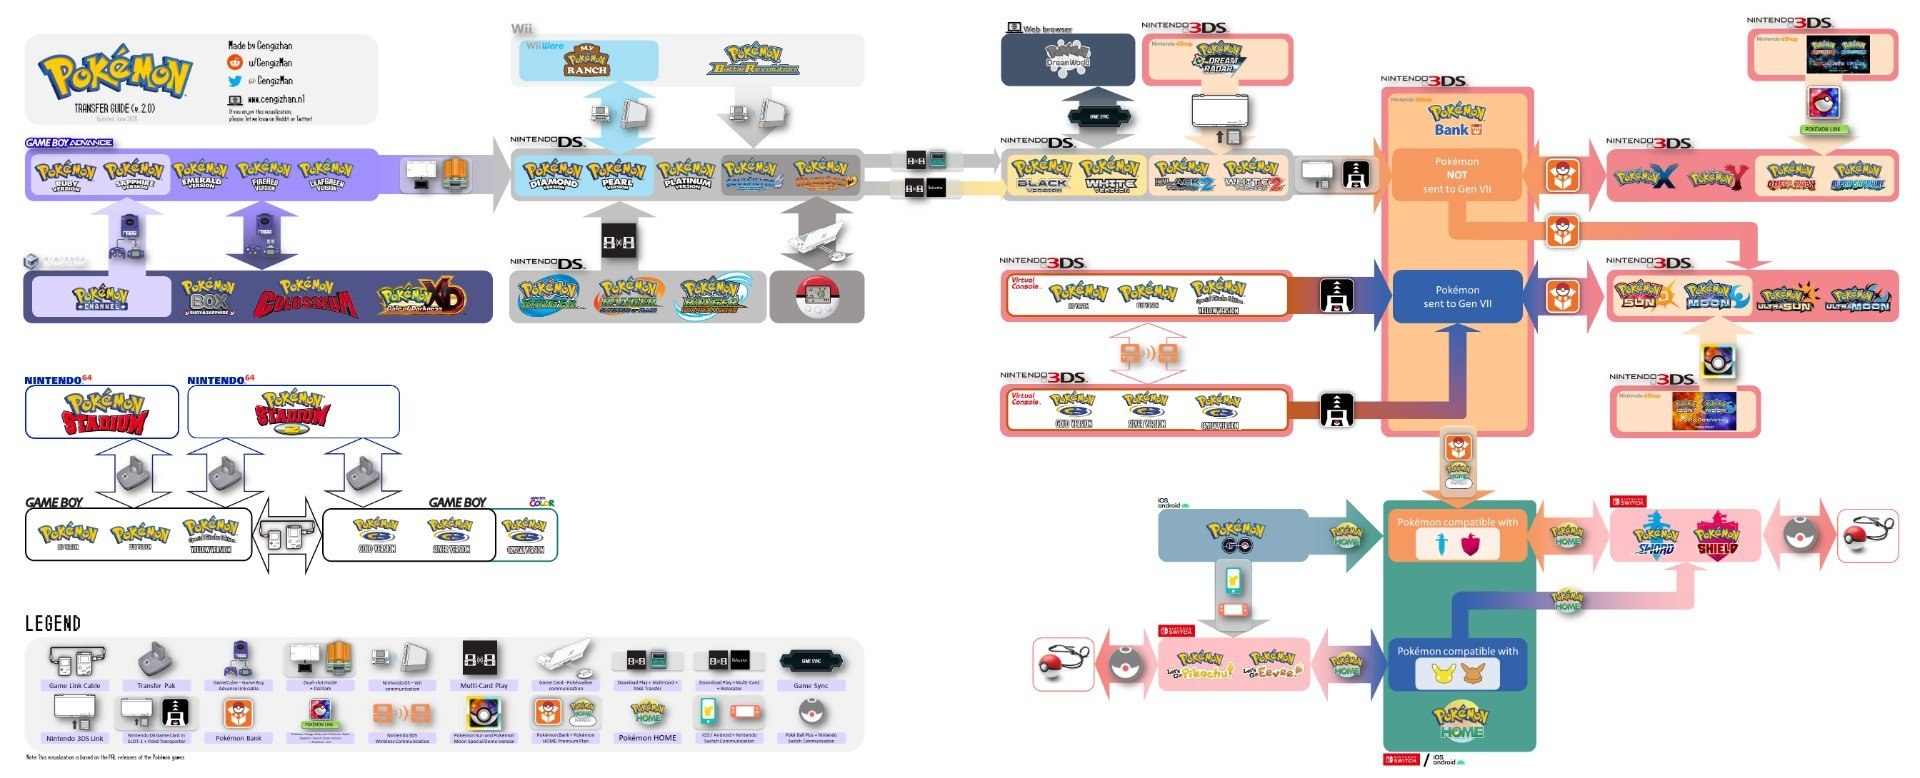 Here's an updated current-gen Pokemon transfer guide screenshot